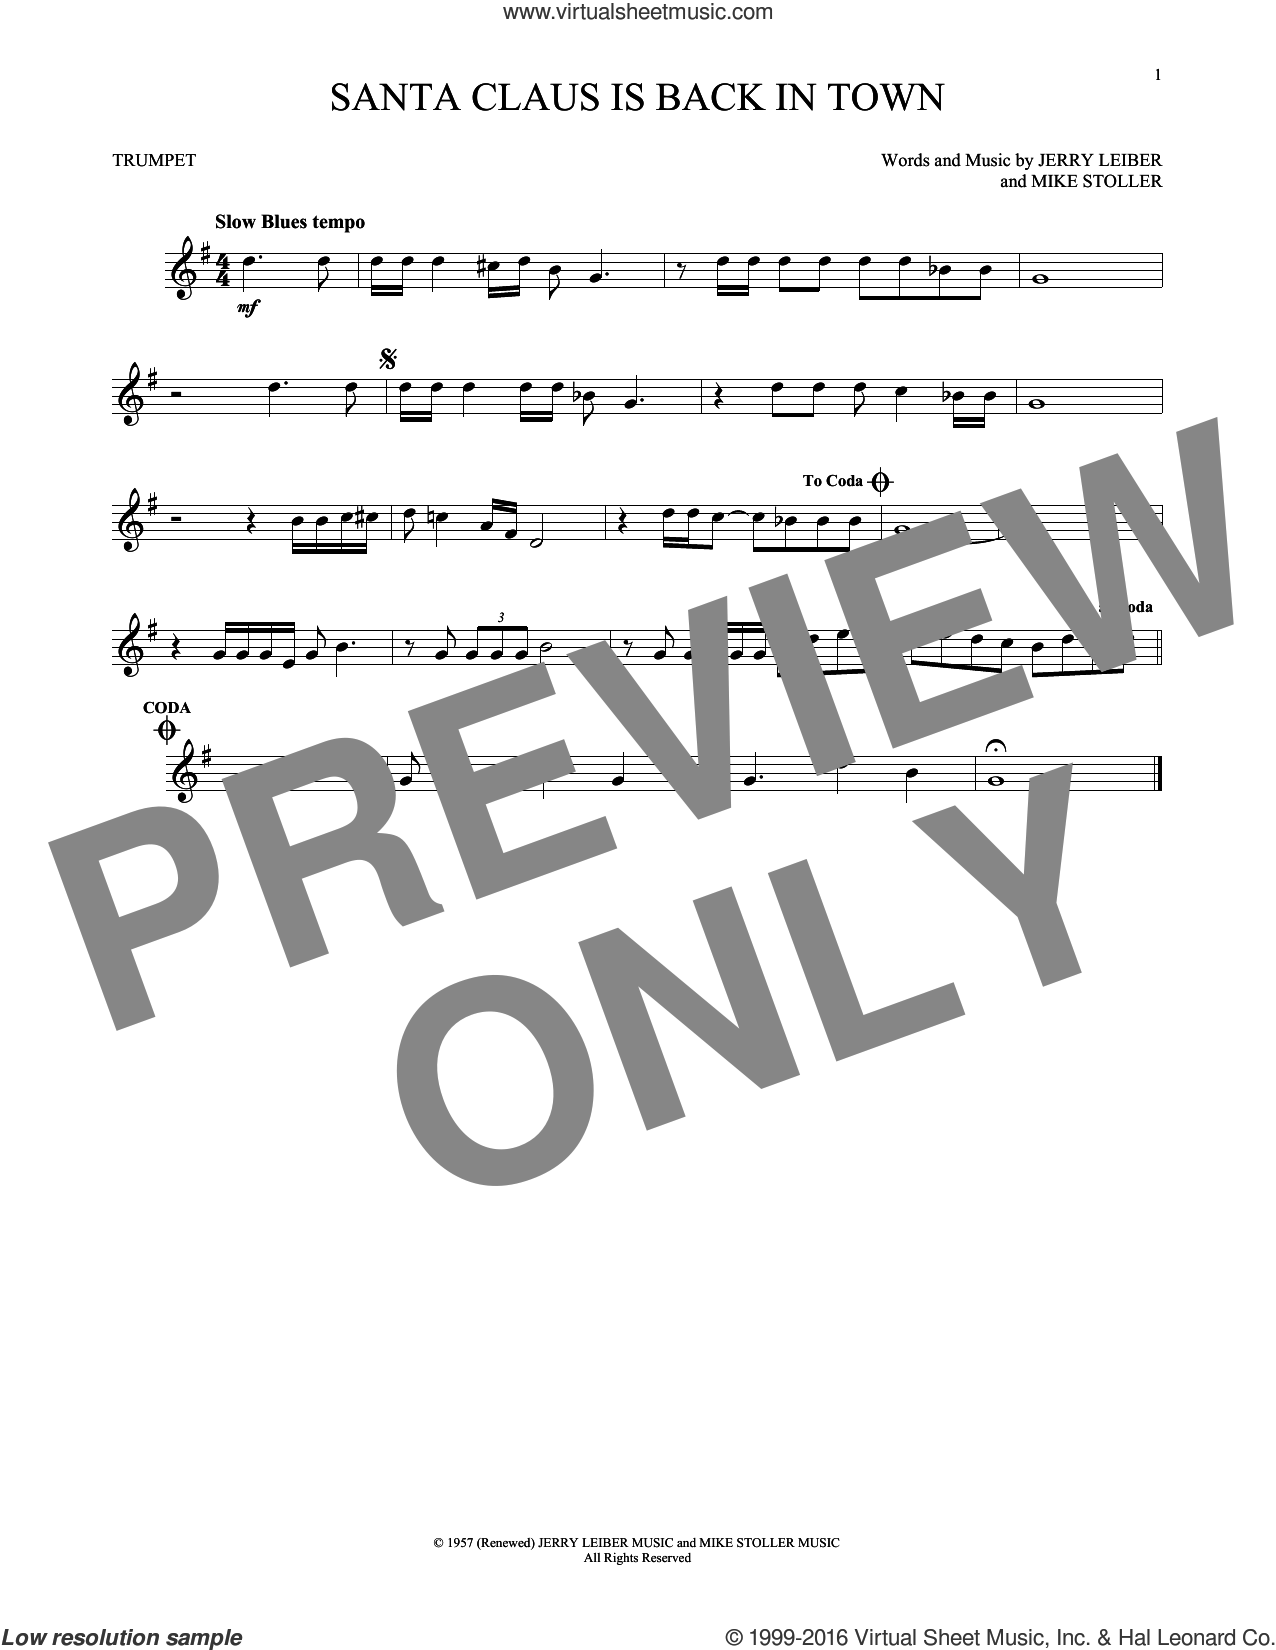 Santa Claus Is Back In Town sheet music for trumpet solo by Elvis Presley, Jerry Leiber and Mike Stoller, intermediate skill level